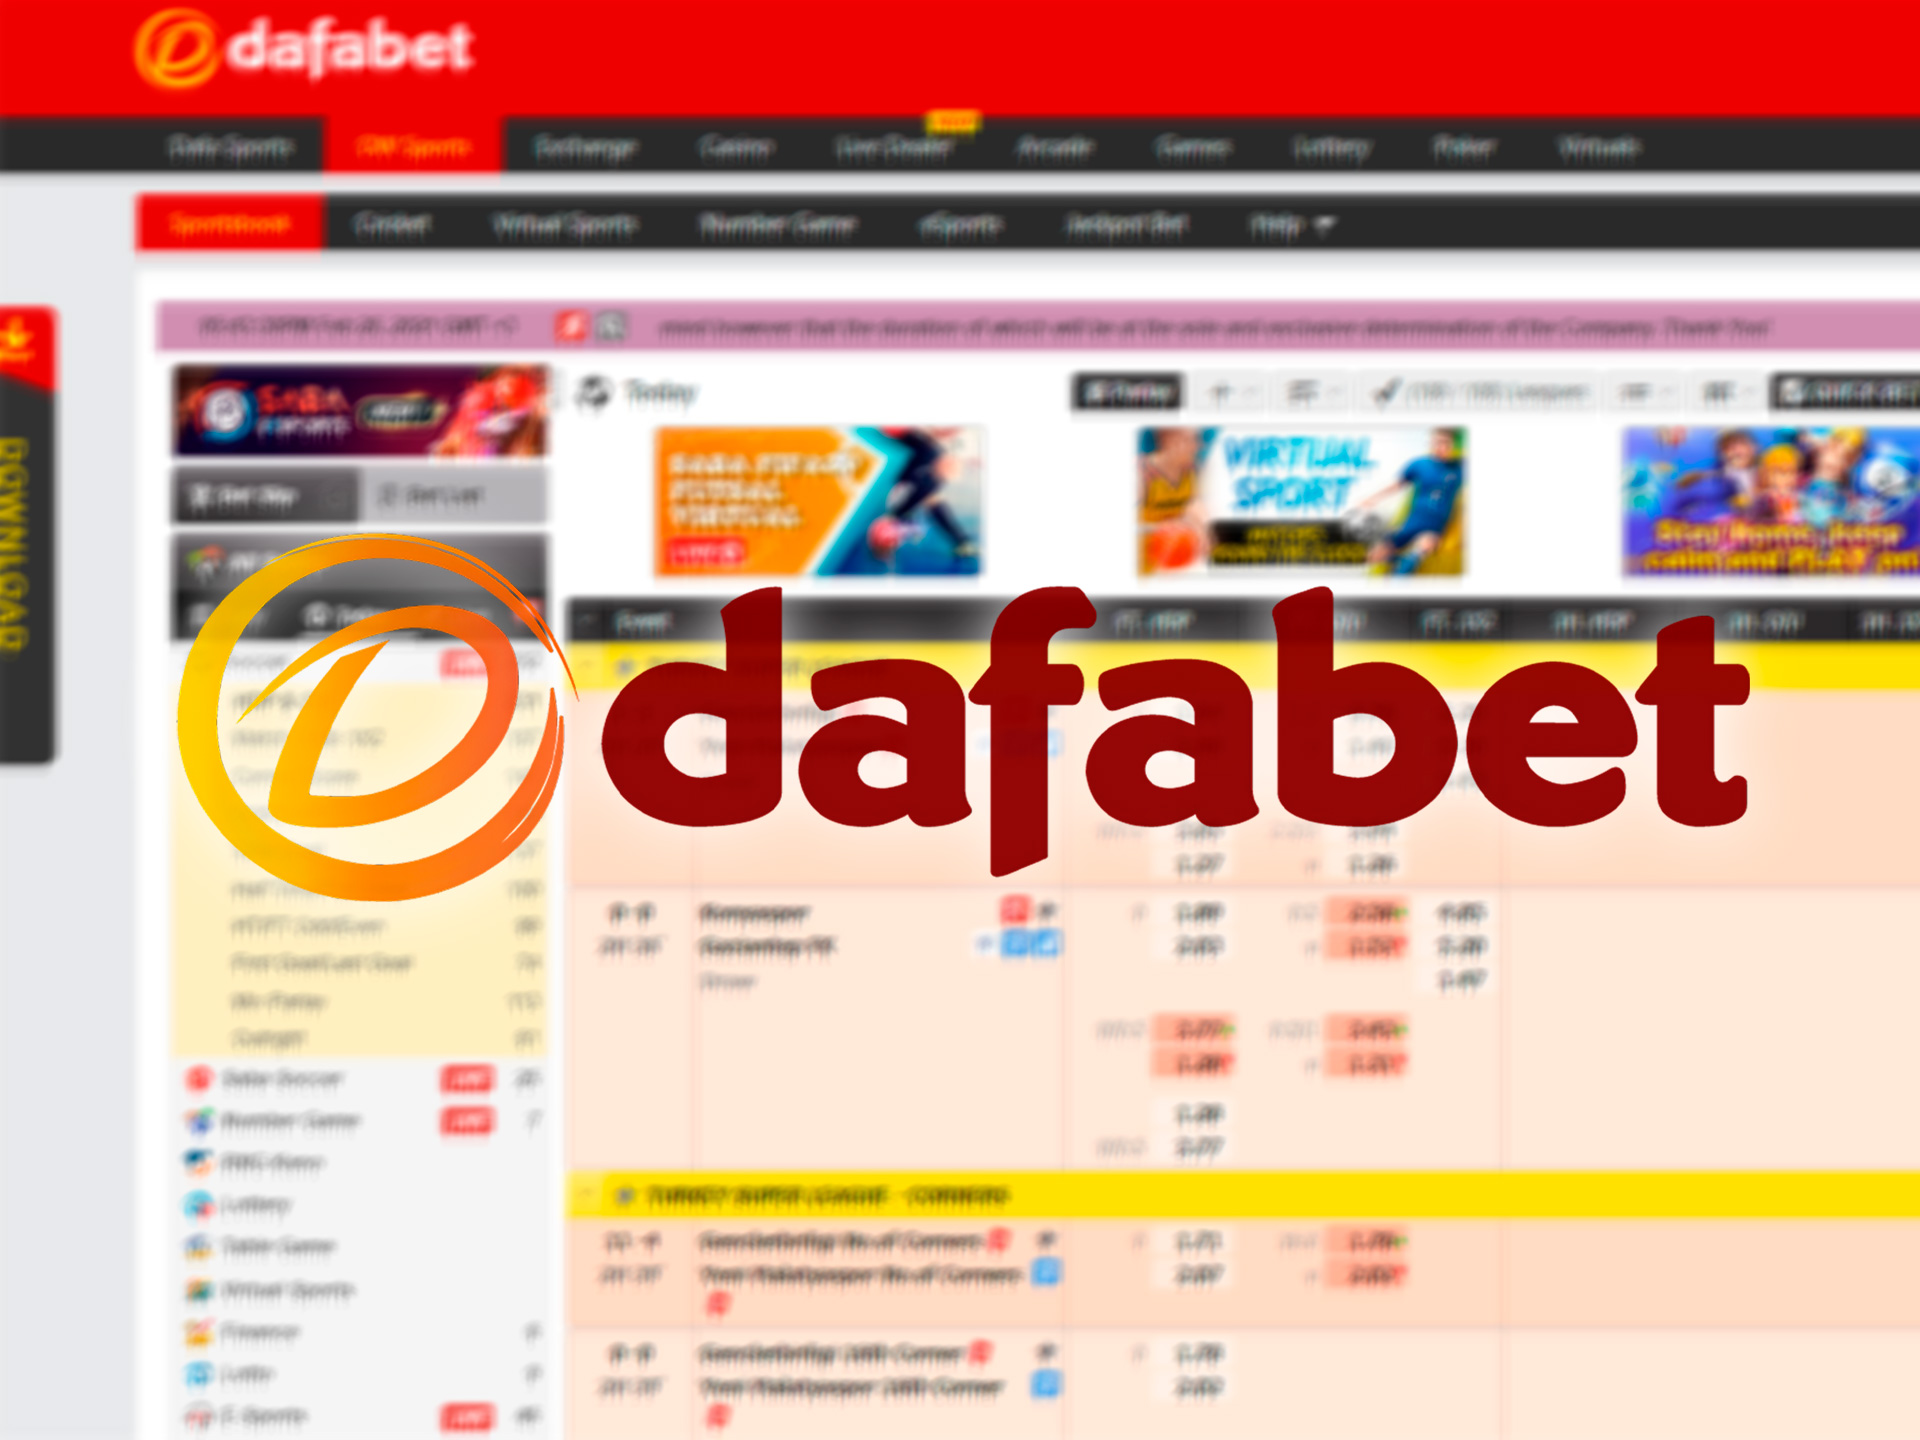 You can bet safely at Dafabet as it's a trustworthy IPL bookmaker.